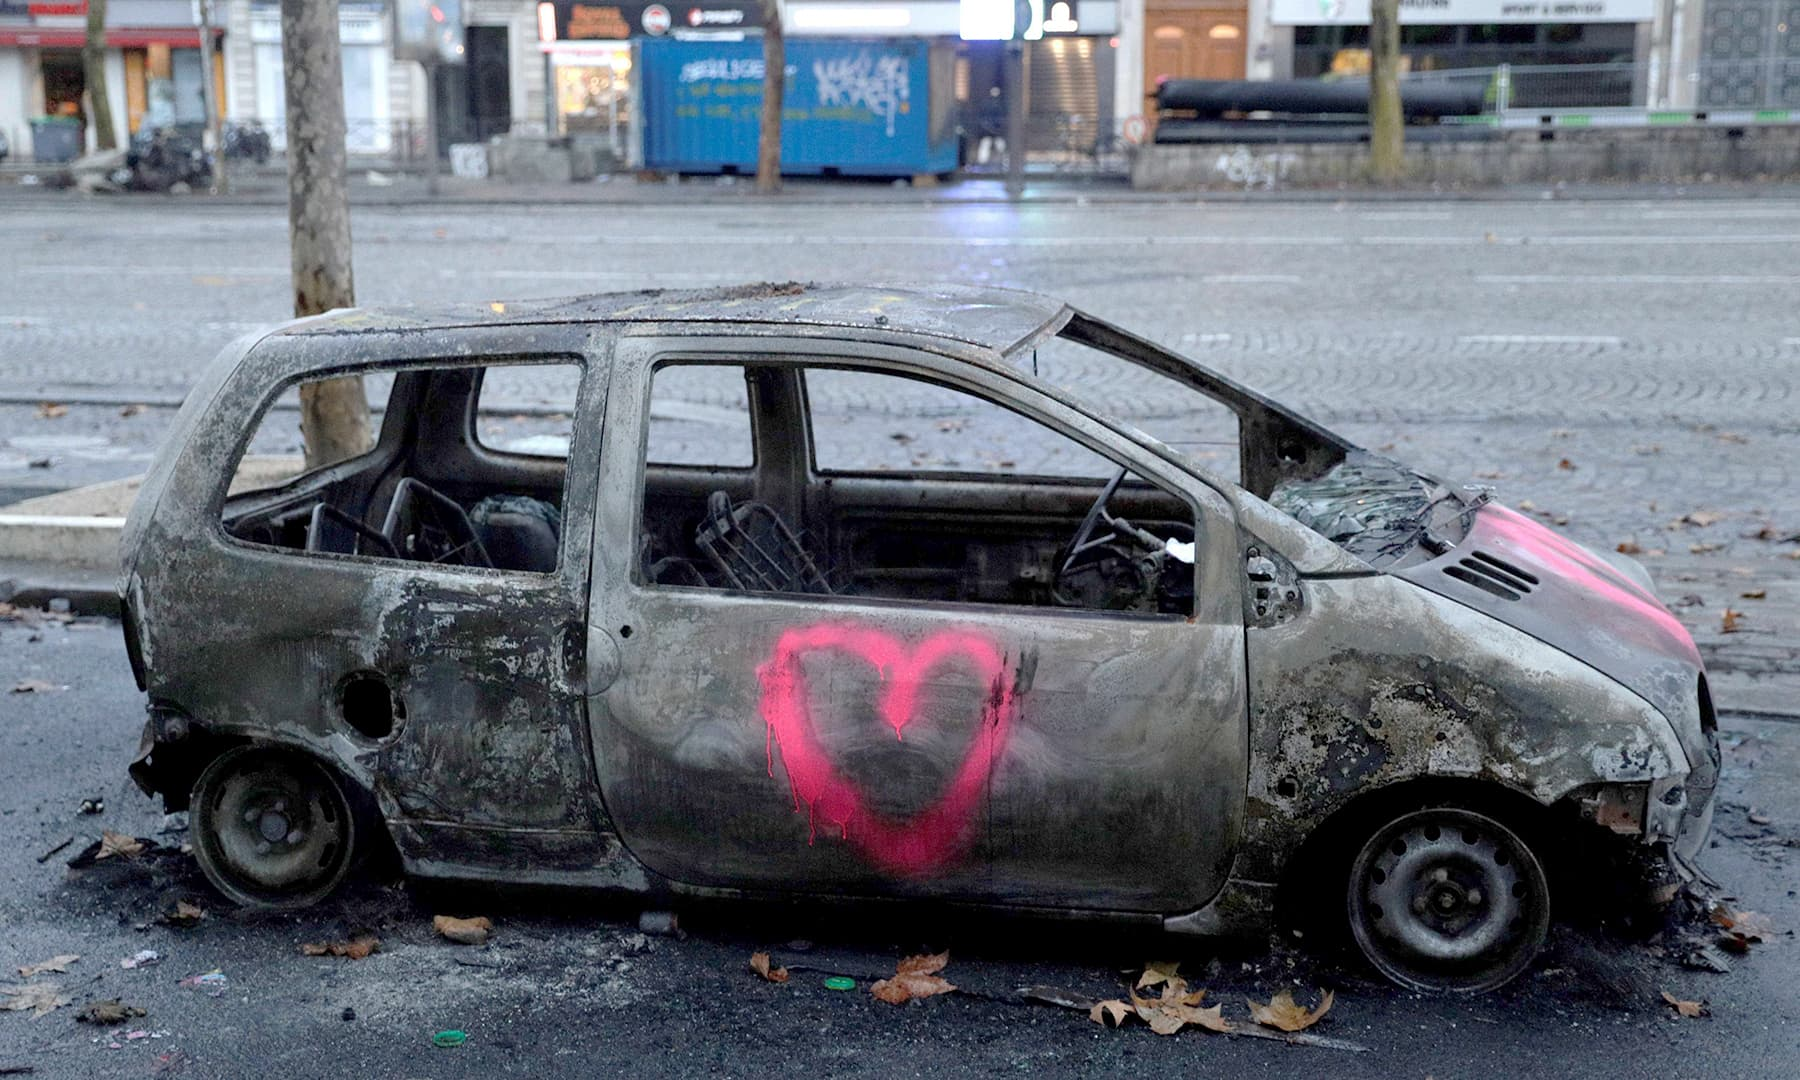 Dozens of cars were left burning in the worst riot in a decade. —AFP